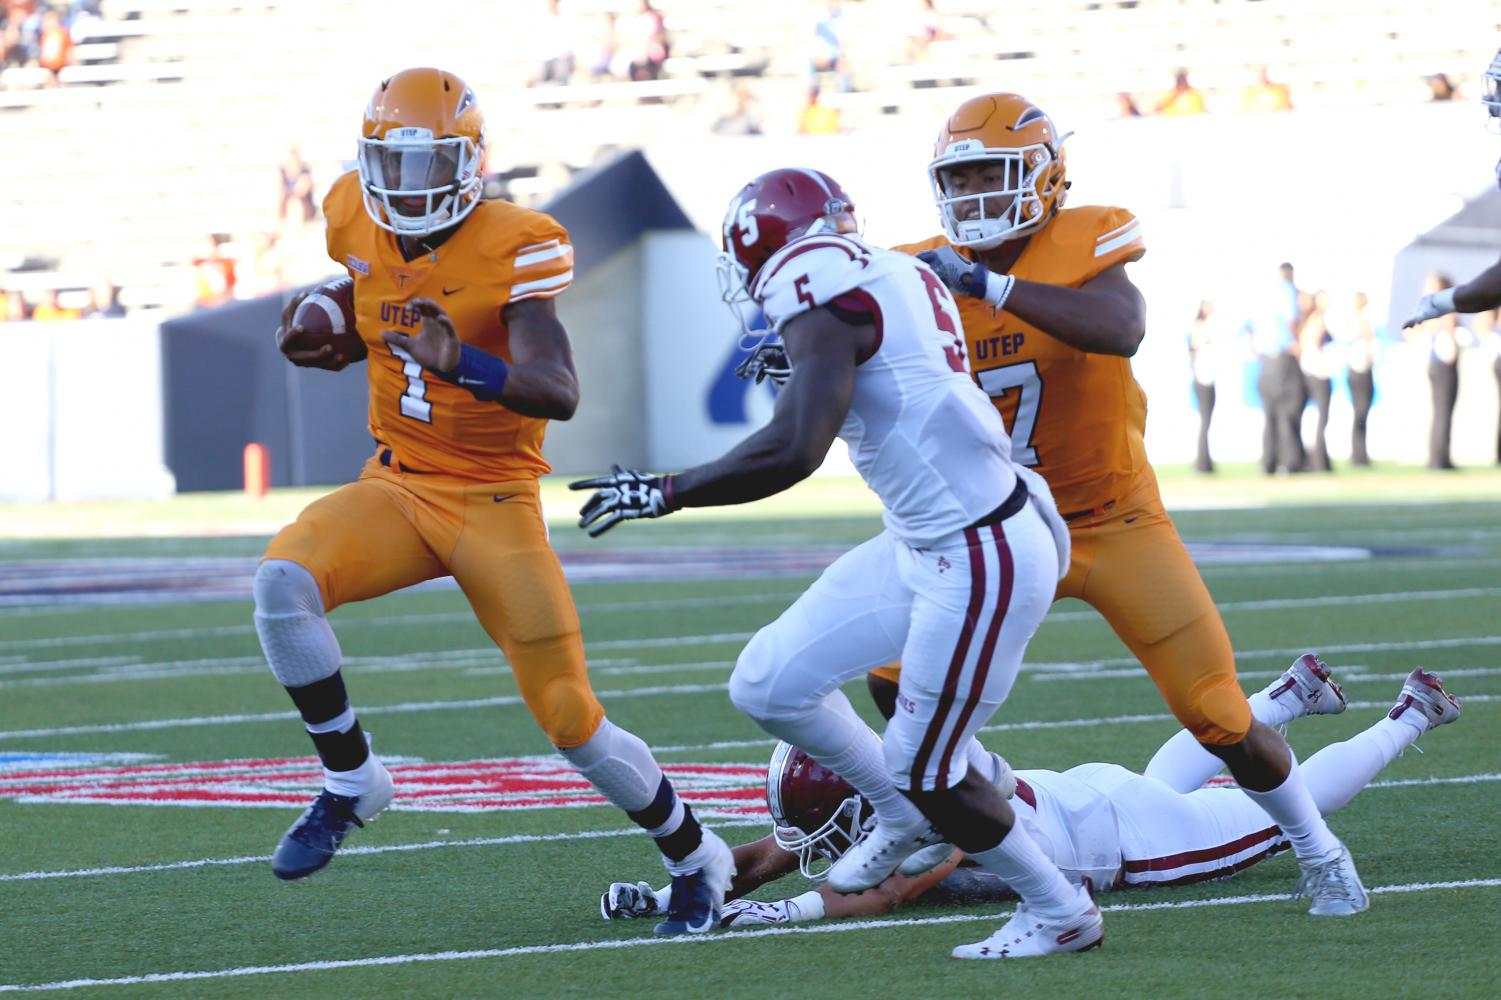 Senior quarterback Kai Locksley was arrested Saturday on four charges and is suspended from the team.